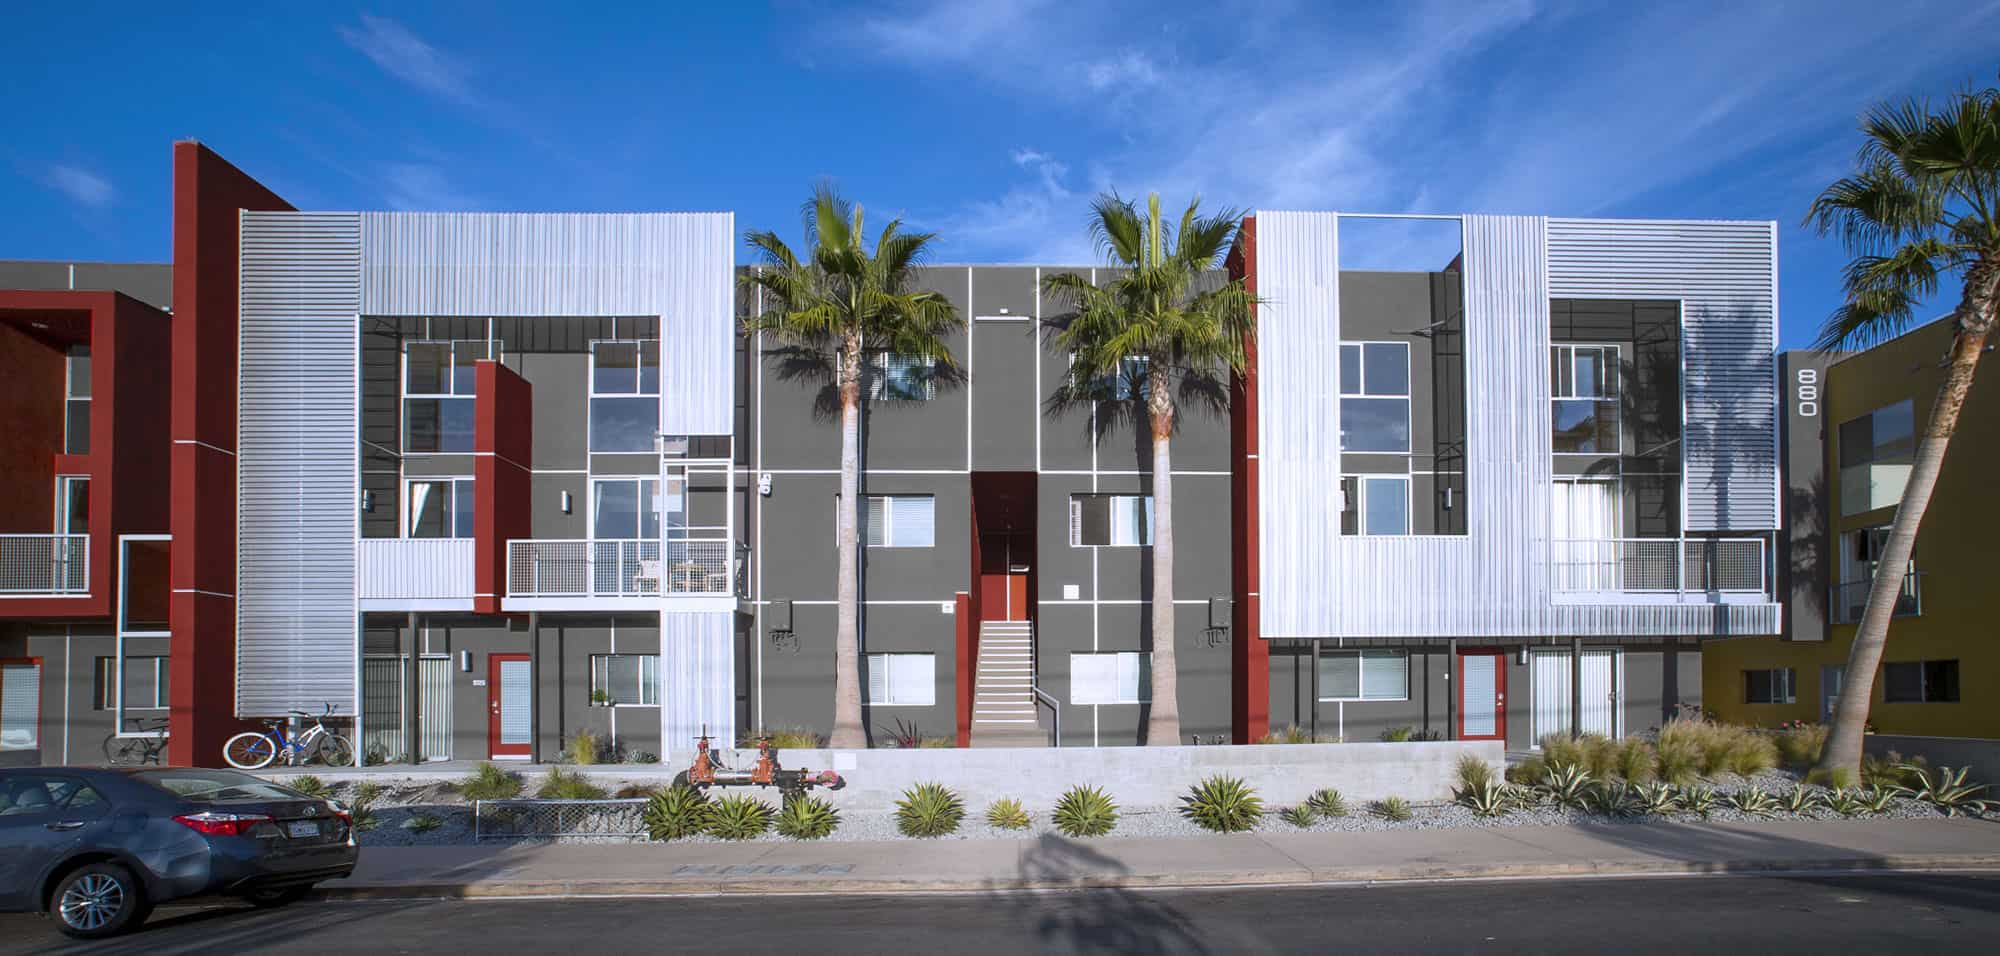 0823_Isla Vista Housing__R3B3331